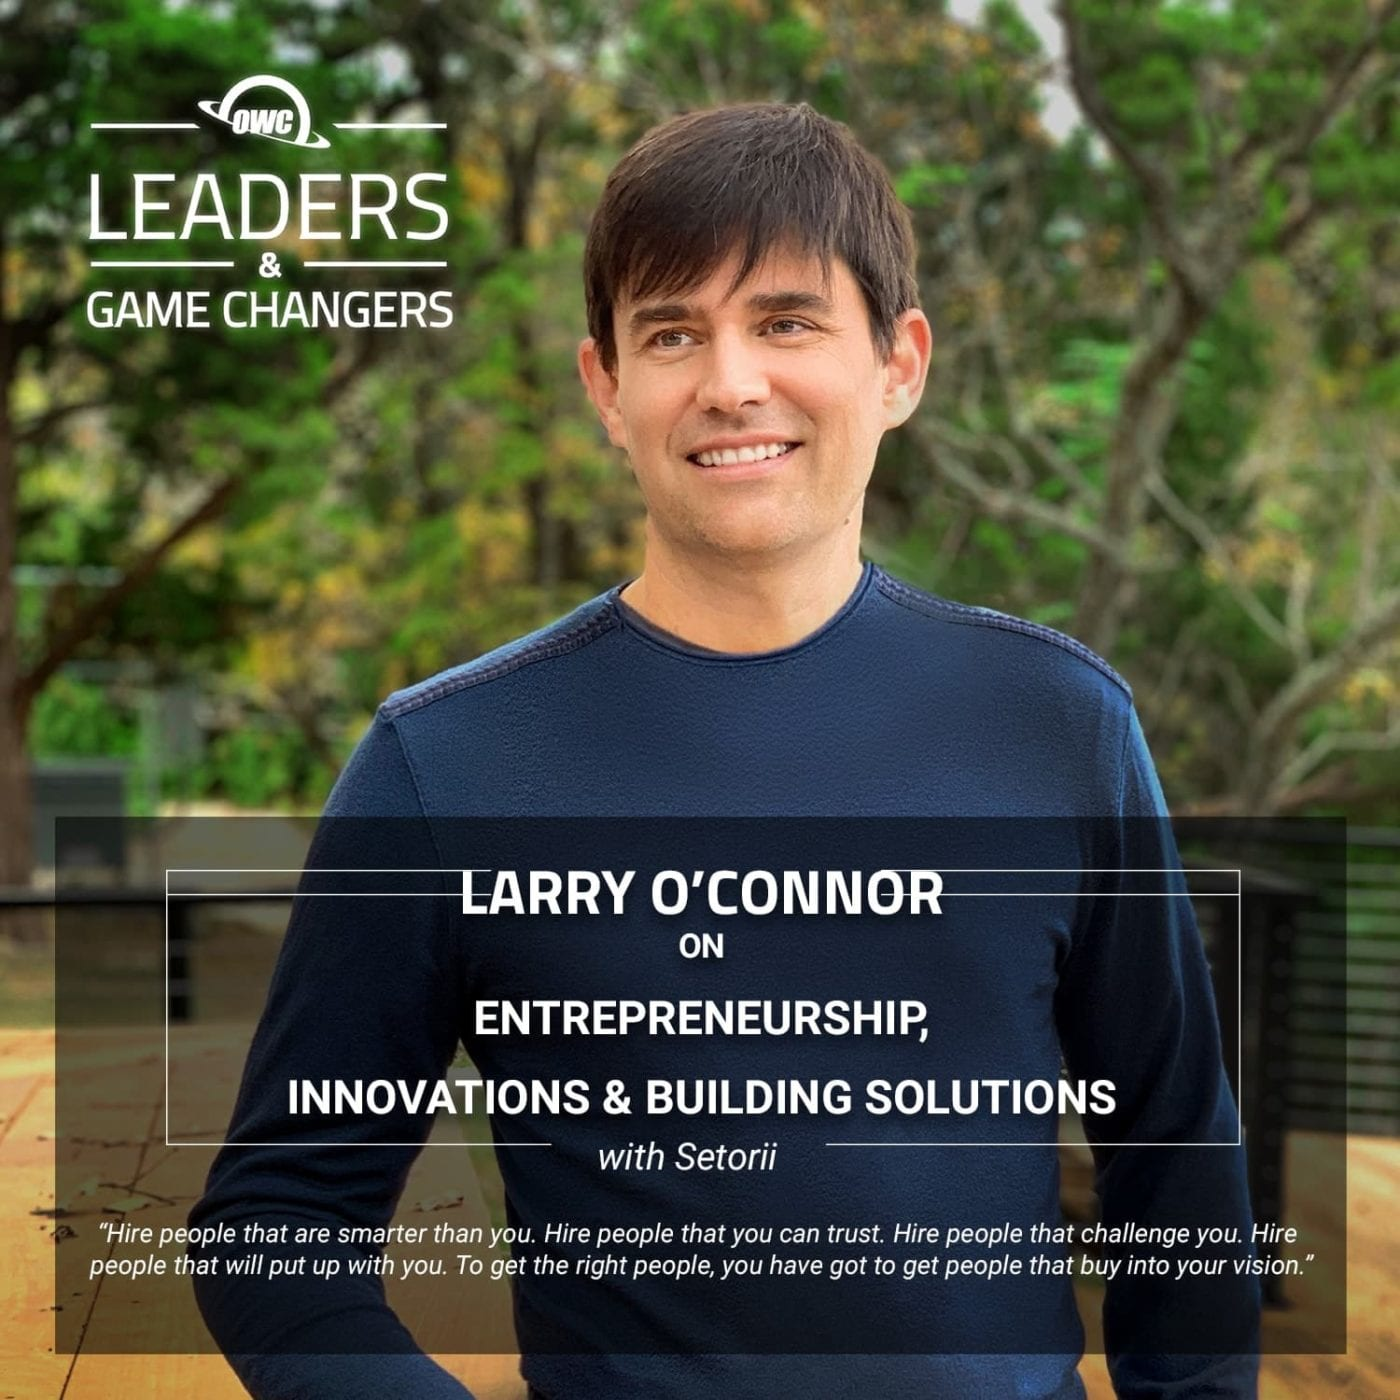 Larry O'Connor on OWC's Leaders & Game Changers podcast